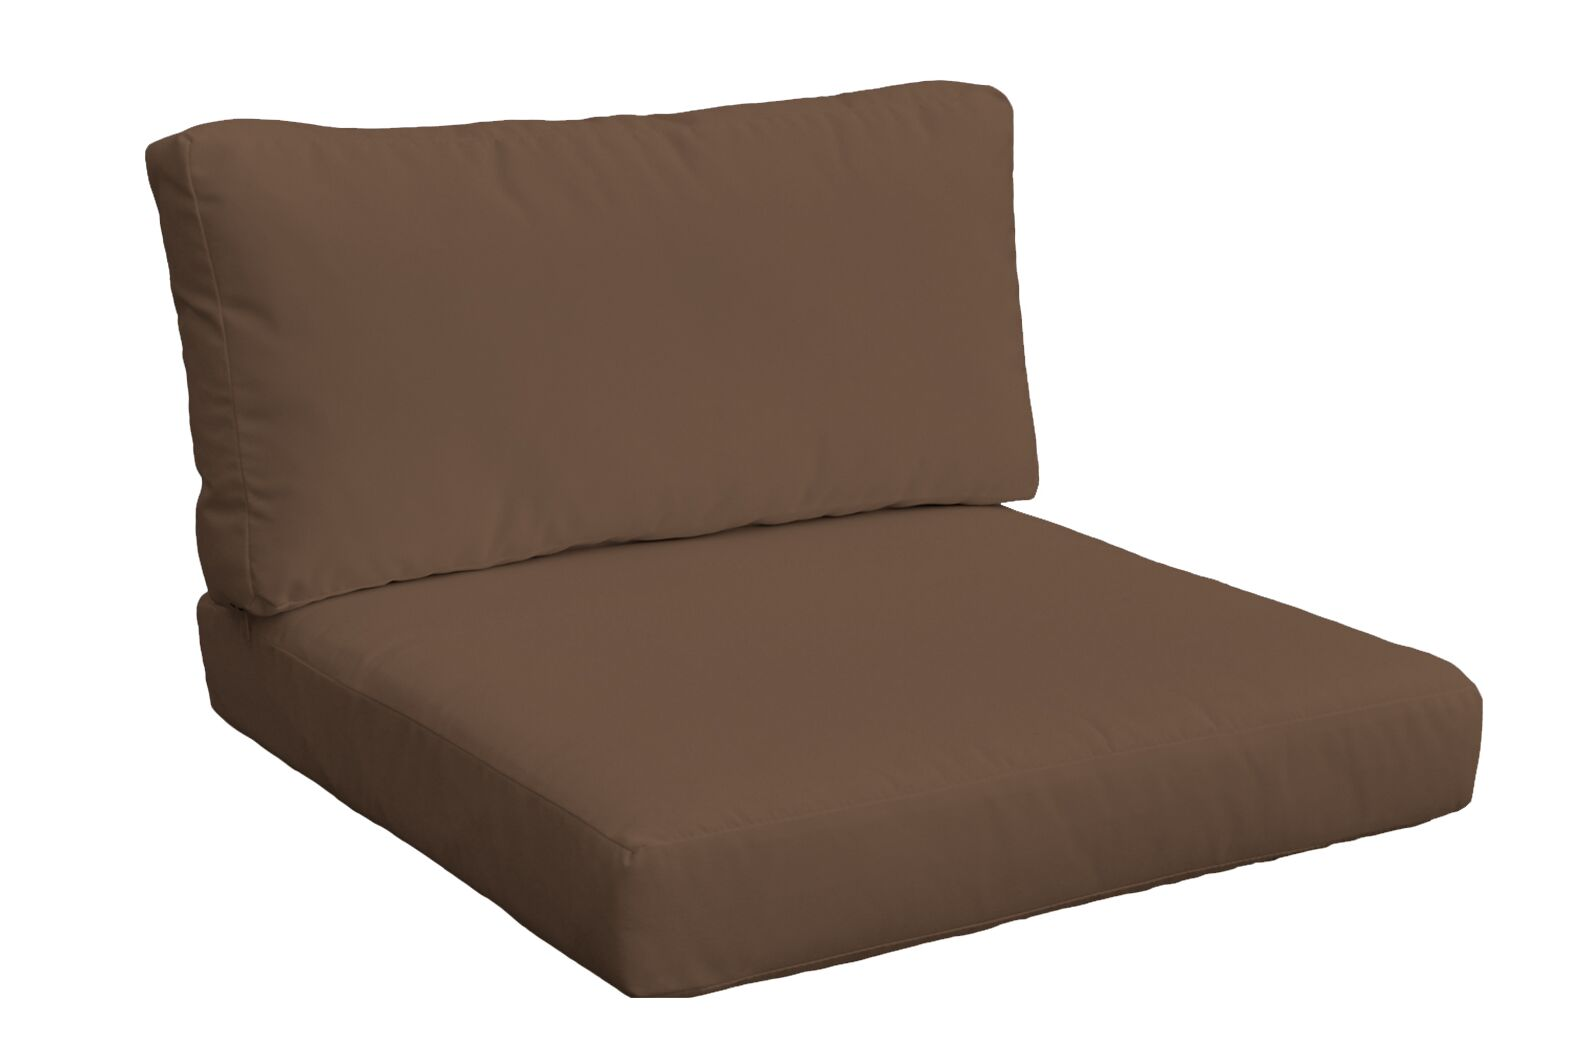 2 Piece Outdoor Lounge Chair Cushion Set Size: 17